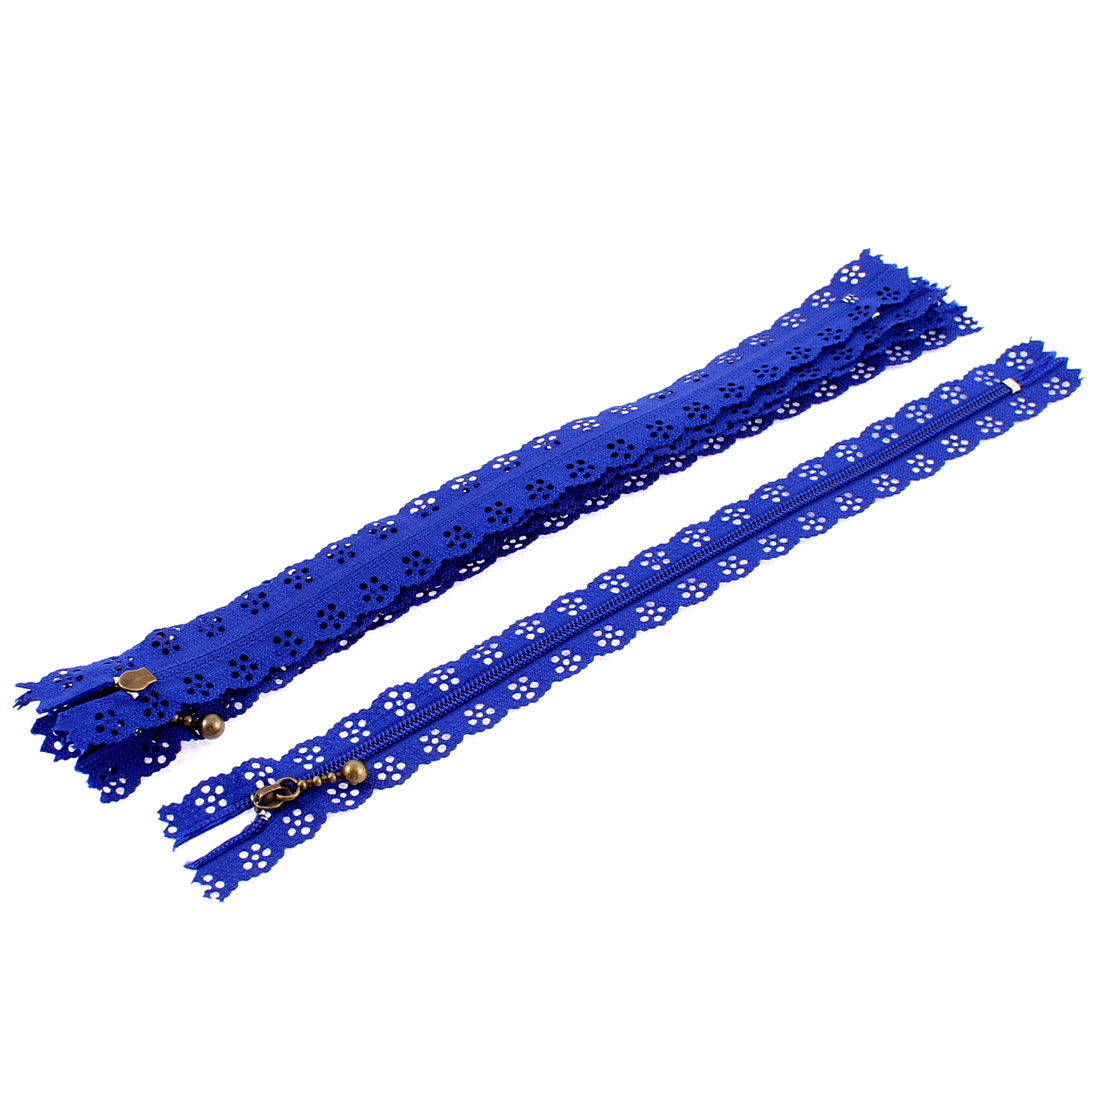 Blue Nylon Flower Floral Lace Closed End Zip Zippers 5 Pcs